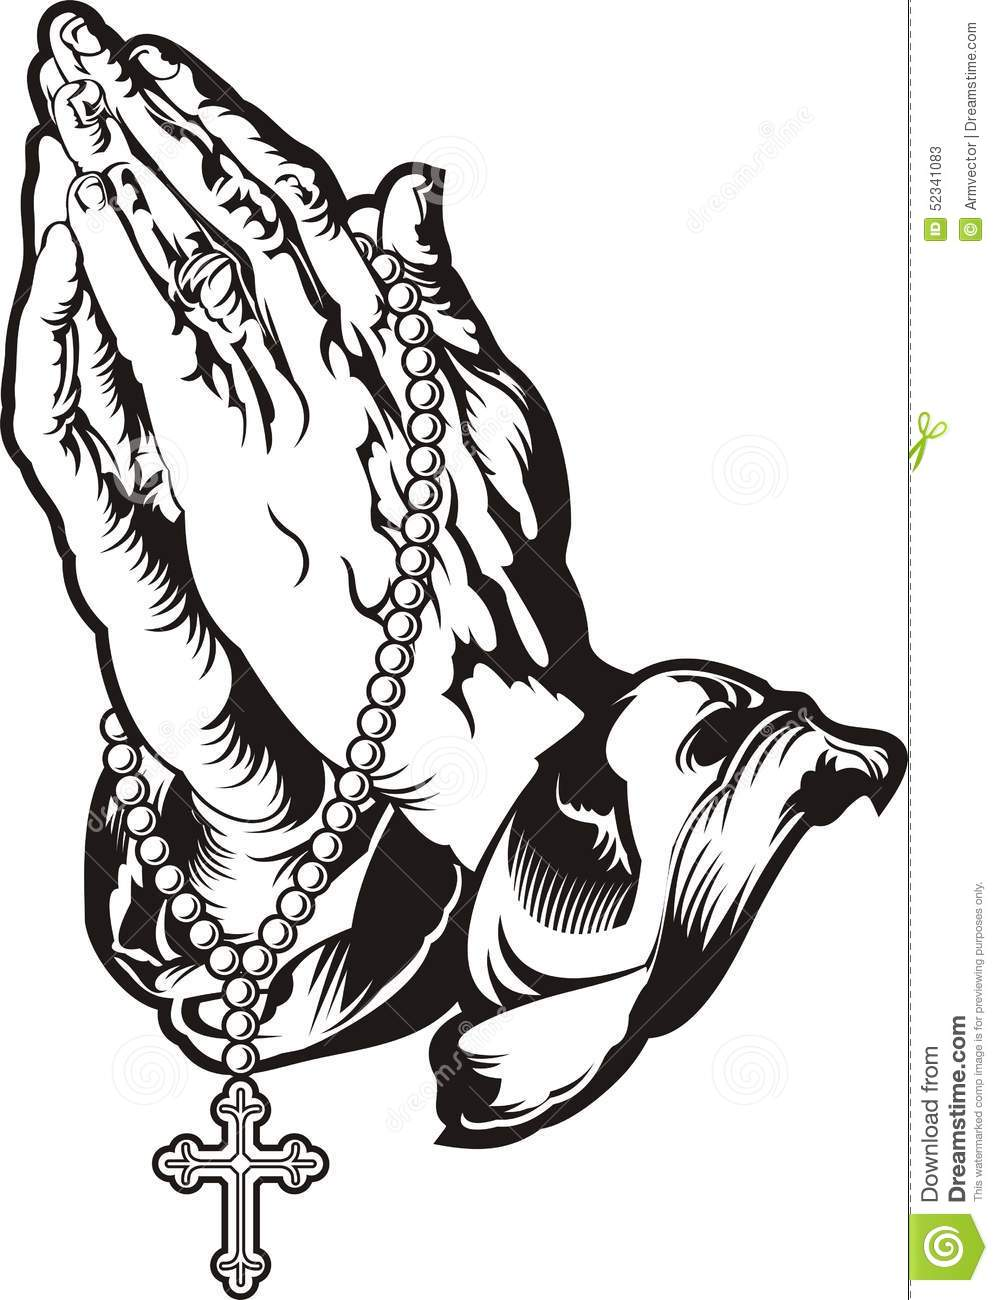 praying hands with rosary tattoo stock vector image prayer hands clipart free prayer hands clip art png